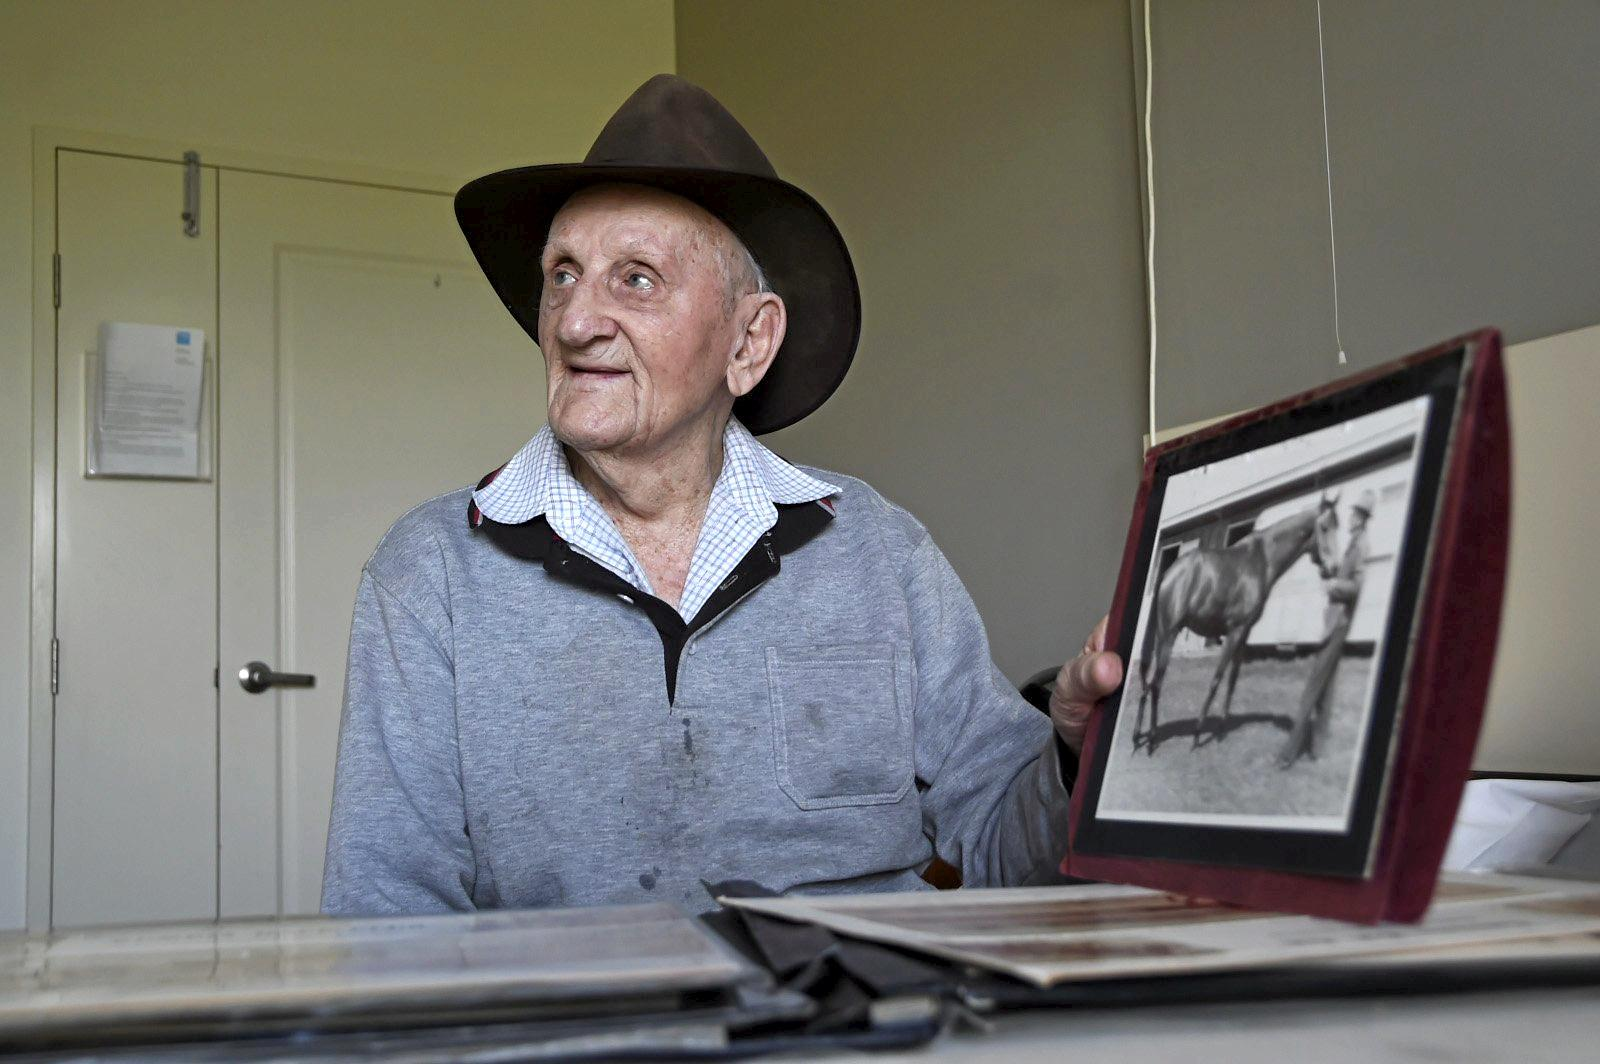 Former Toowoomba horse trainer and farrier Vince Nugent looking back this week at some of his racing memorabilia including a photo of himself with Dream Court.